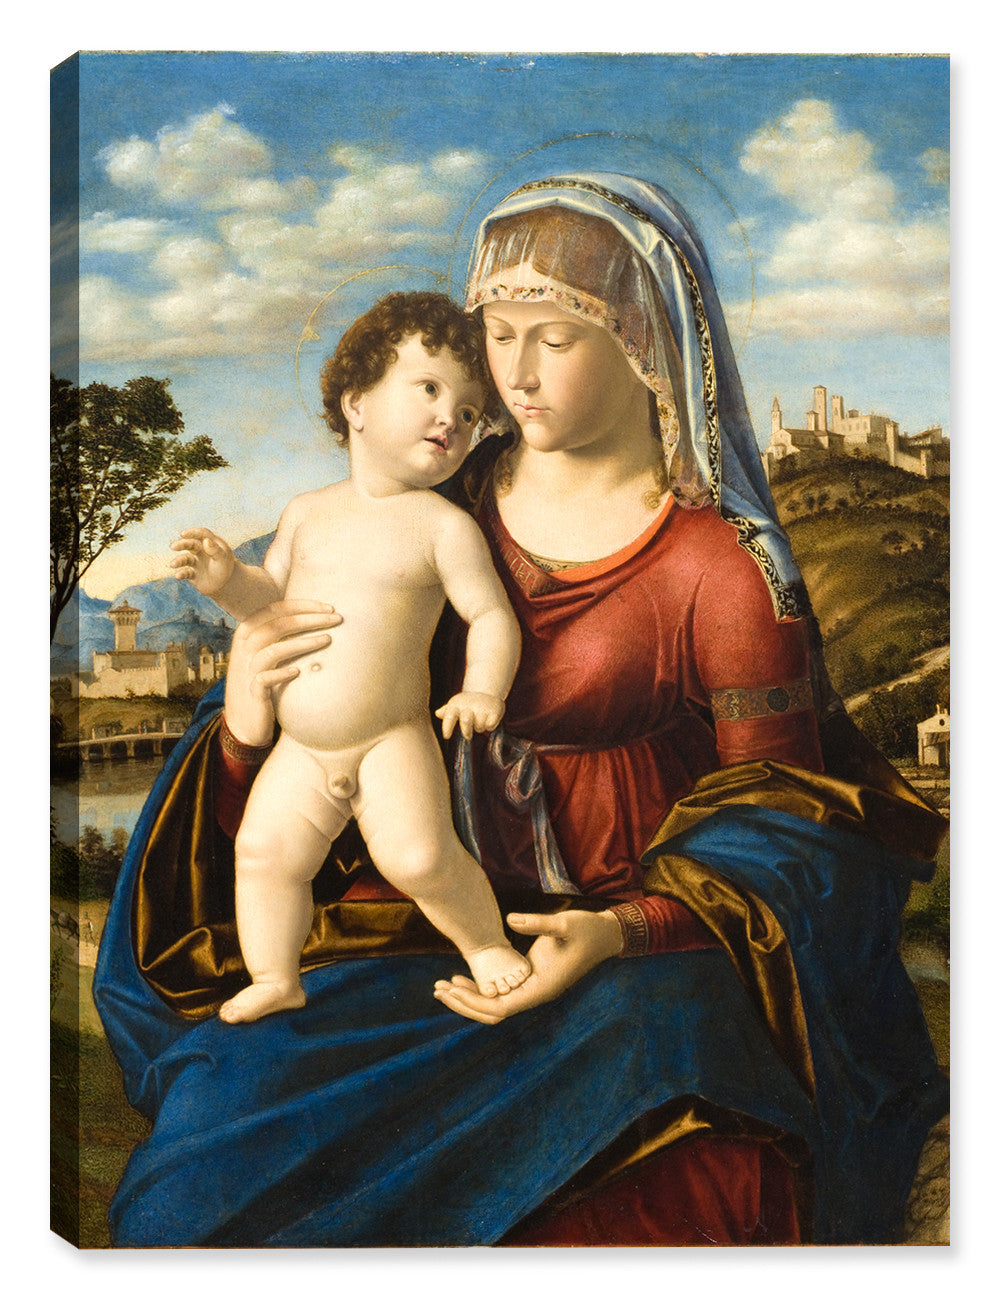 Madonna and Child in a Landscape - Canvas Art Print - Canvas Art Plus